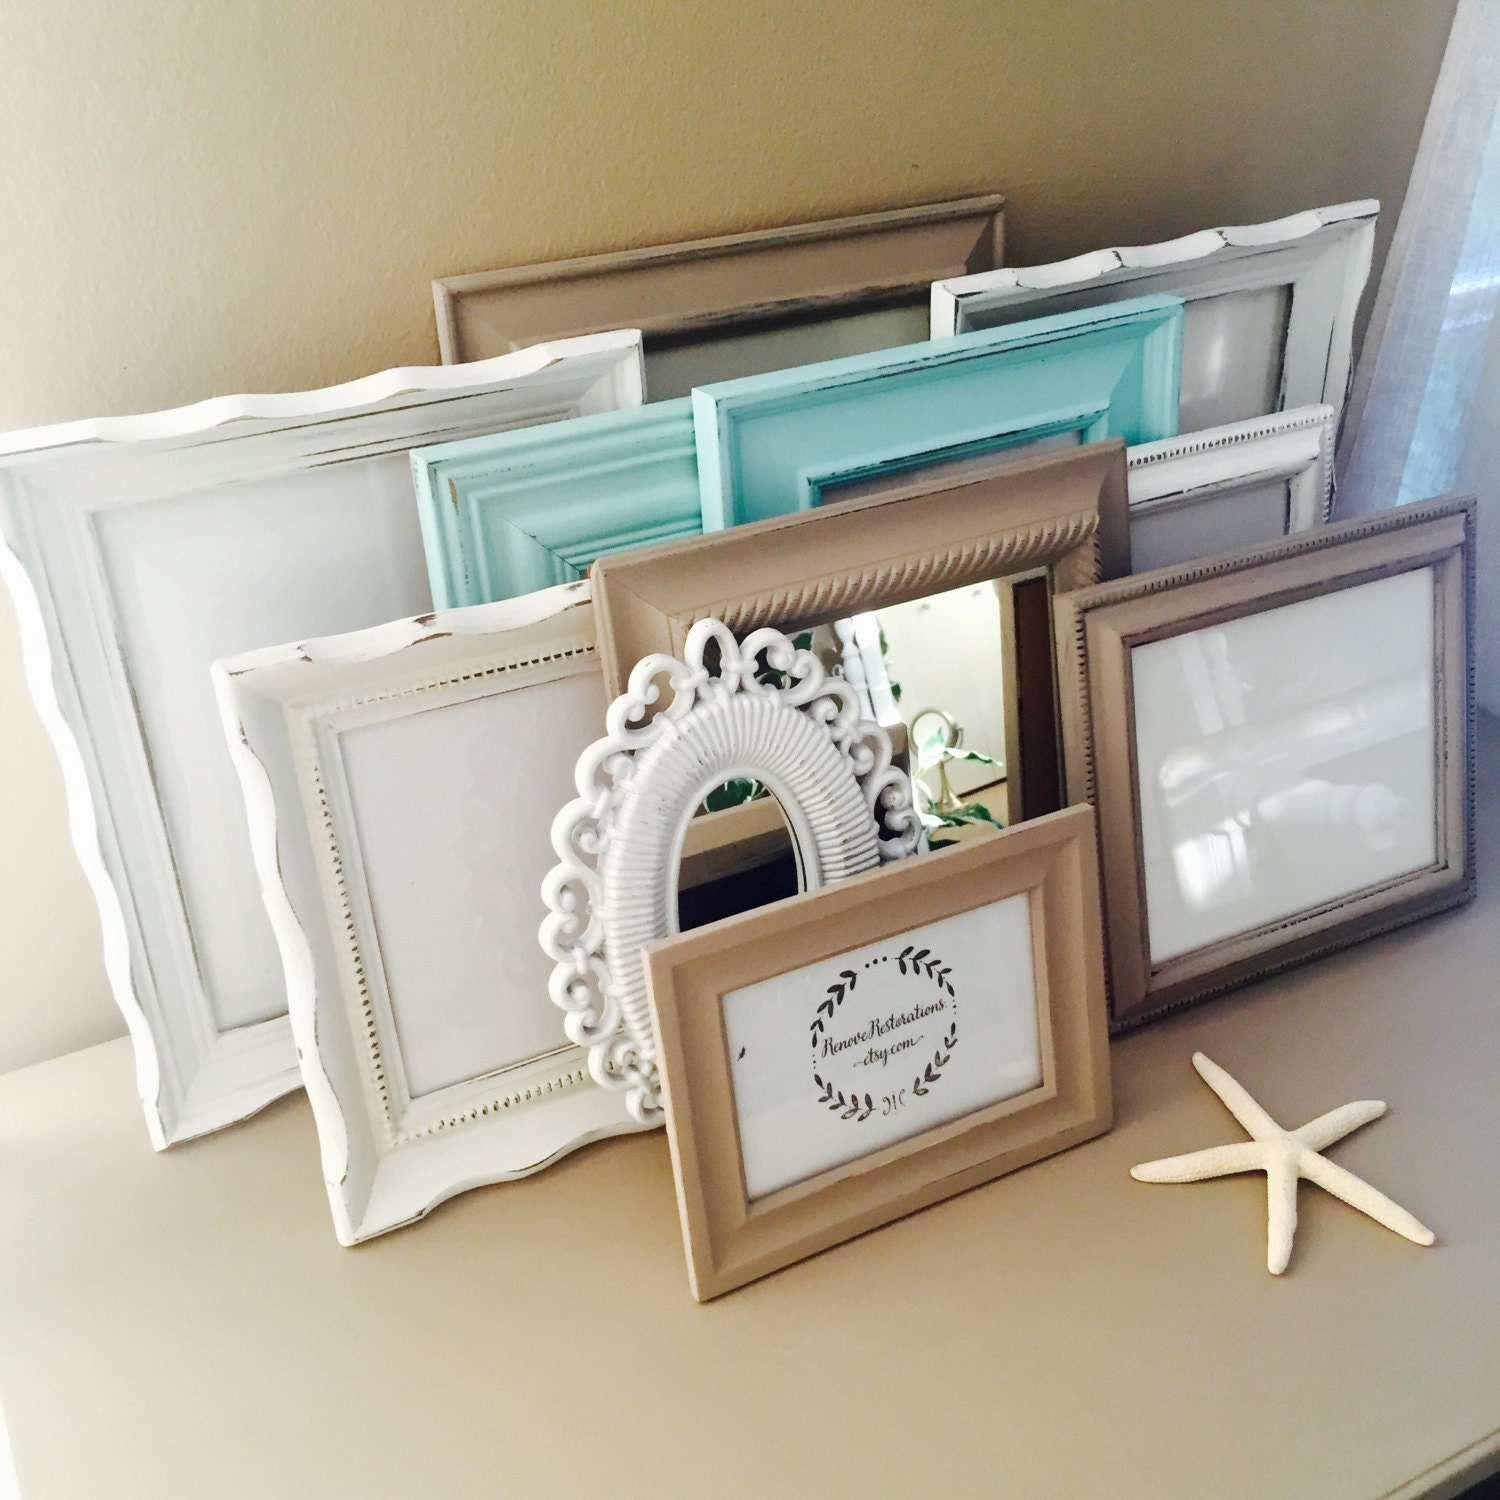 Gallery Wall Frames Set custom taupe and blue gallery wall frame set hand-painted and